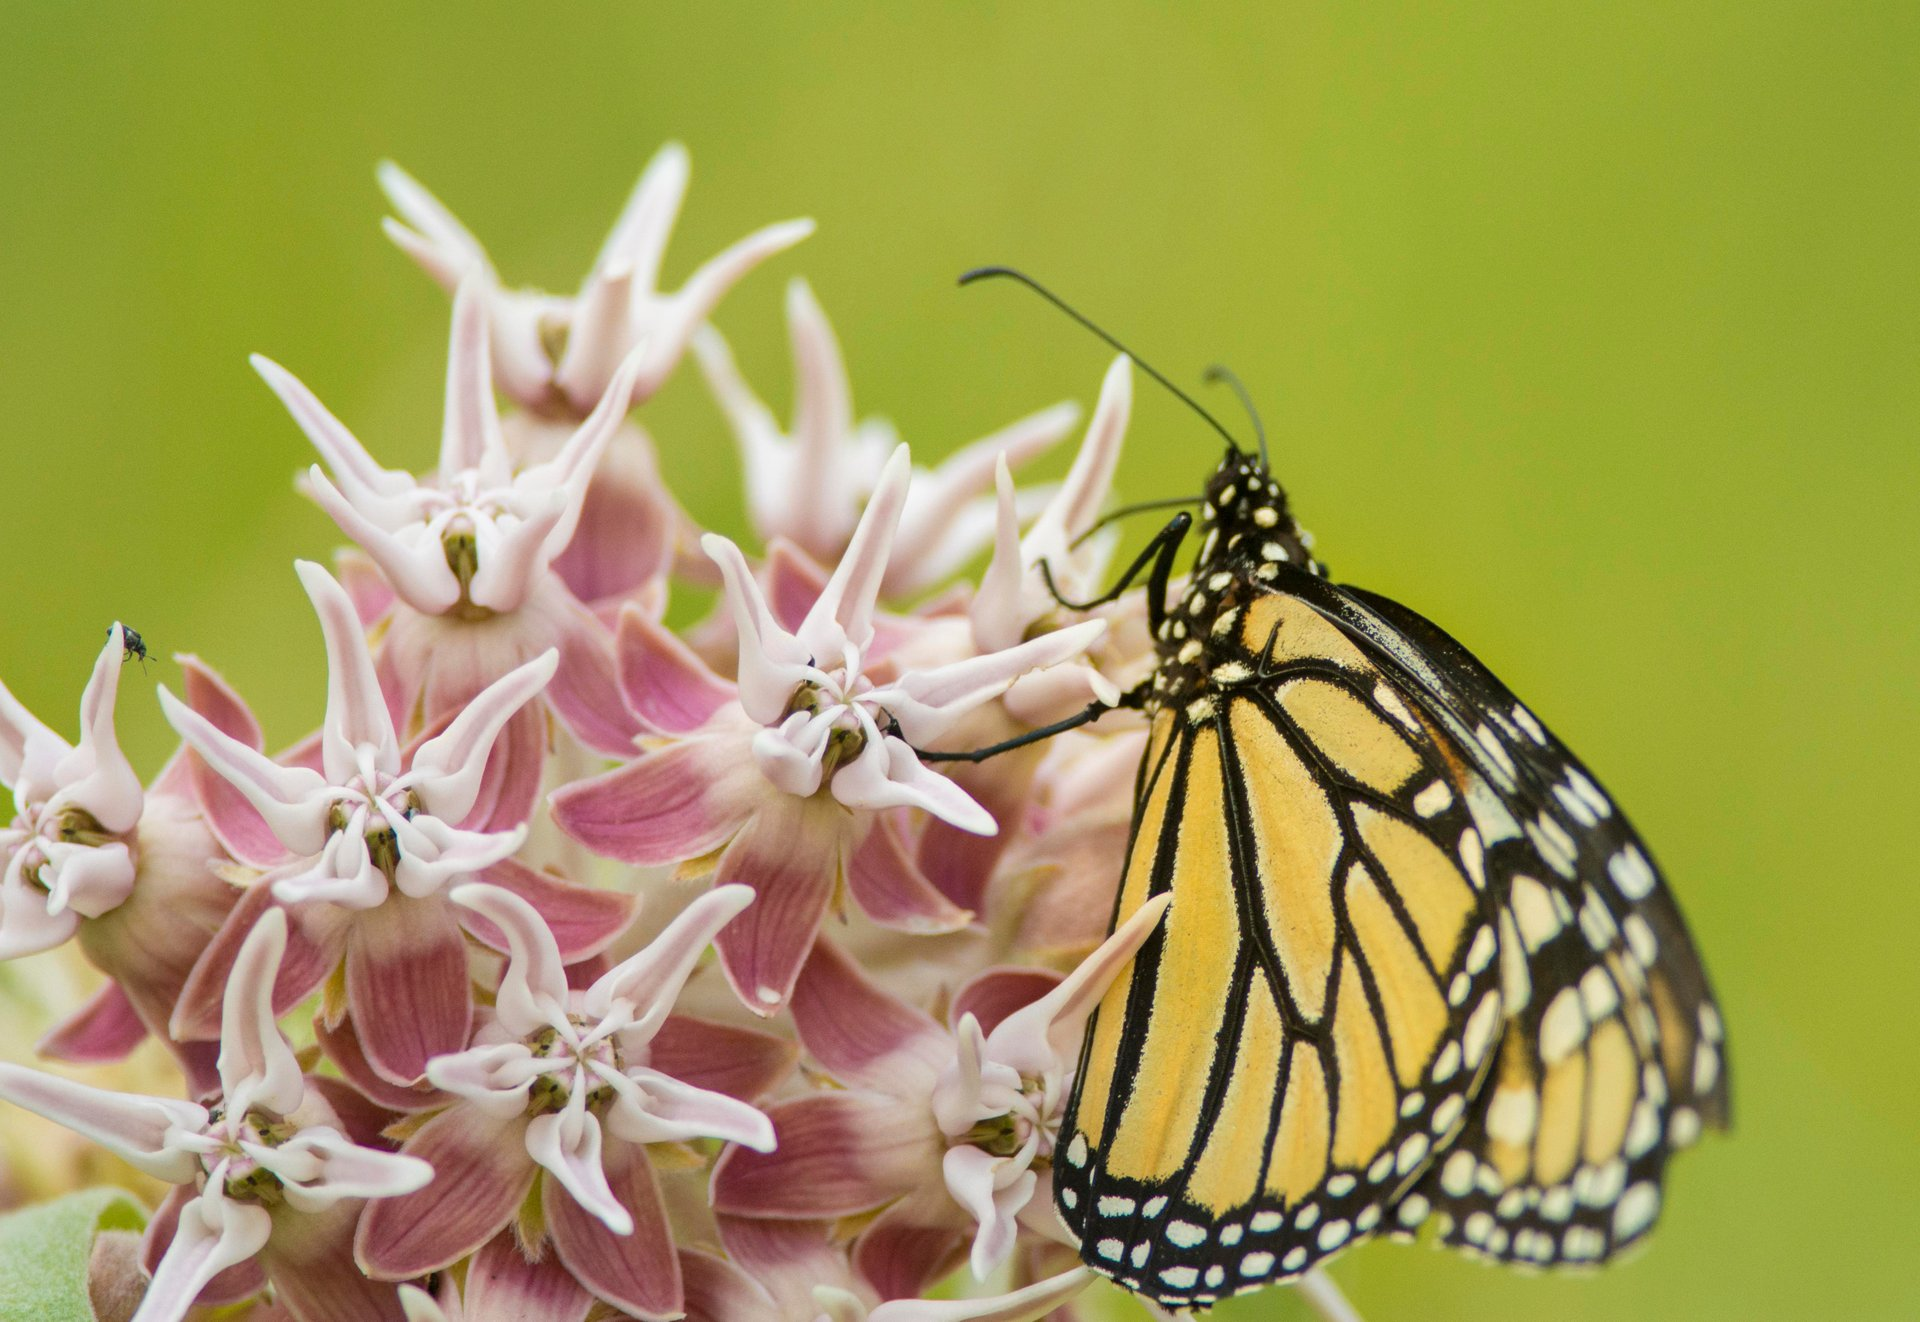 Milkweed and Monarch Butterflies in Yosemite 2020 - Best Time